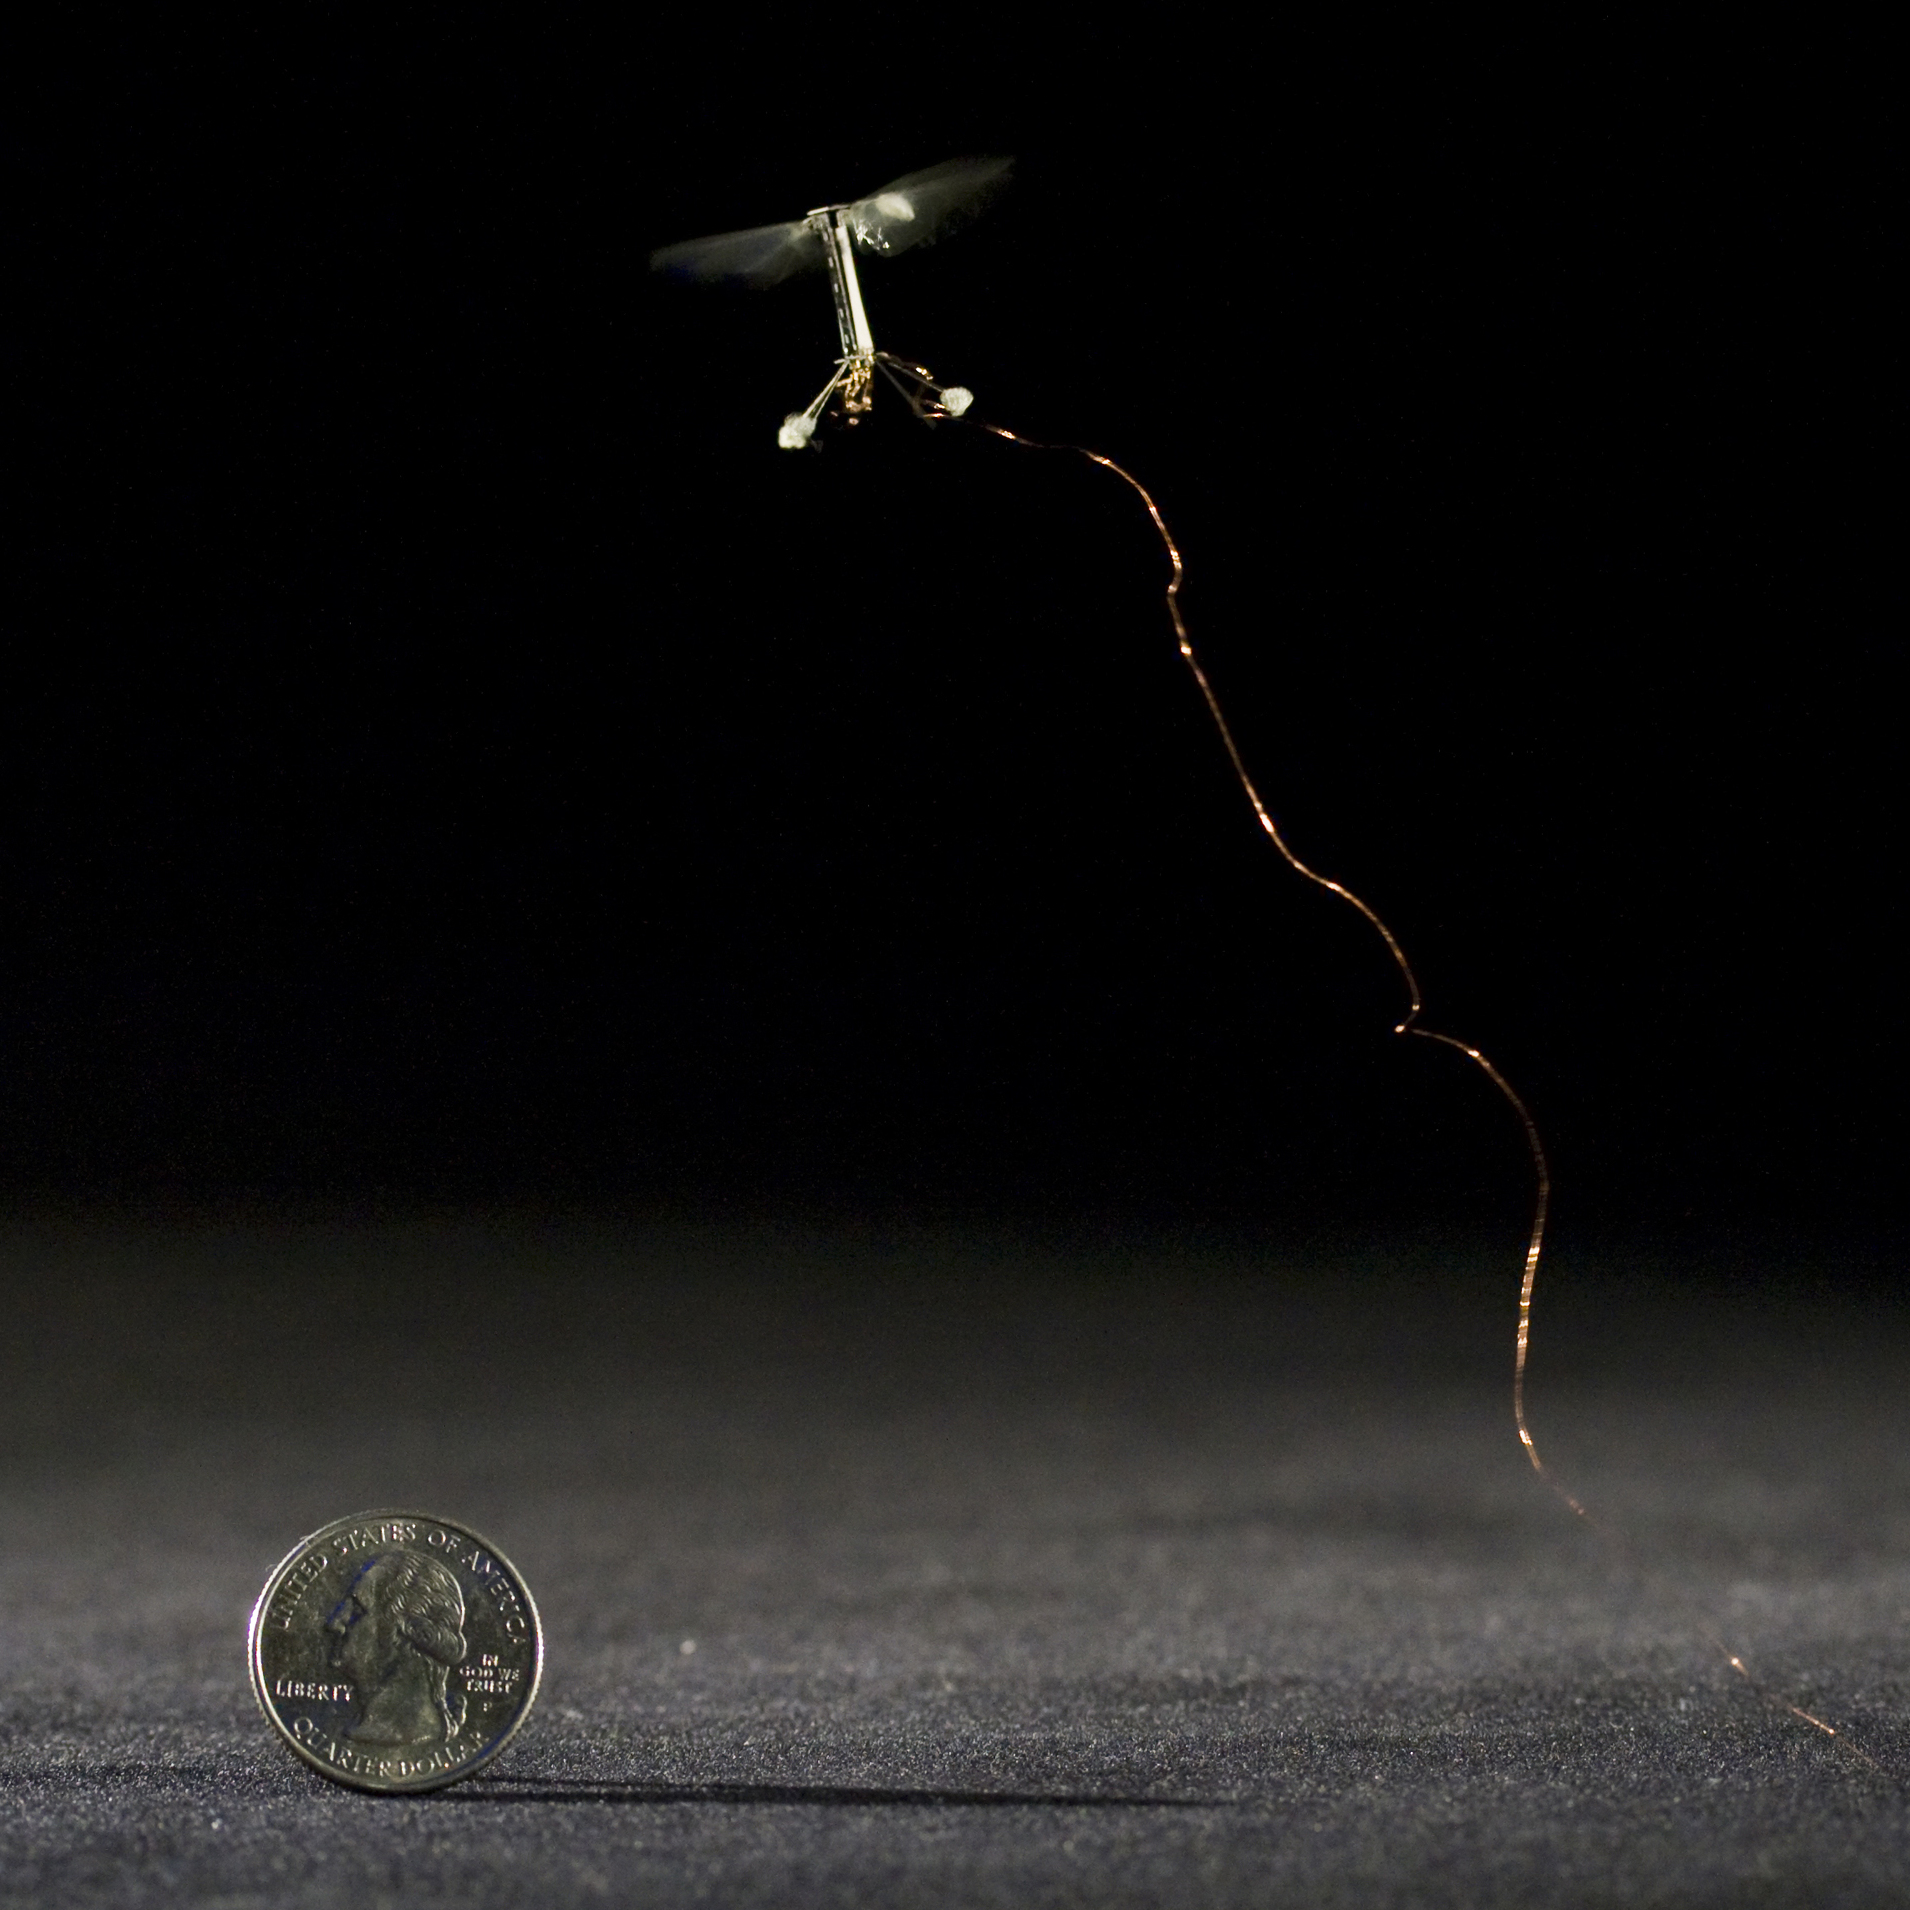 A robotic fly in controlled flight.